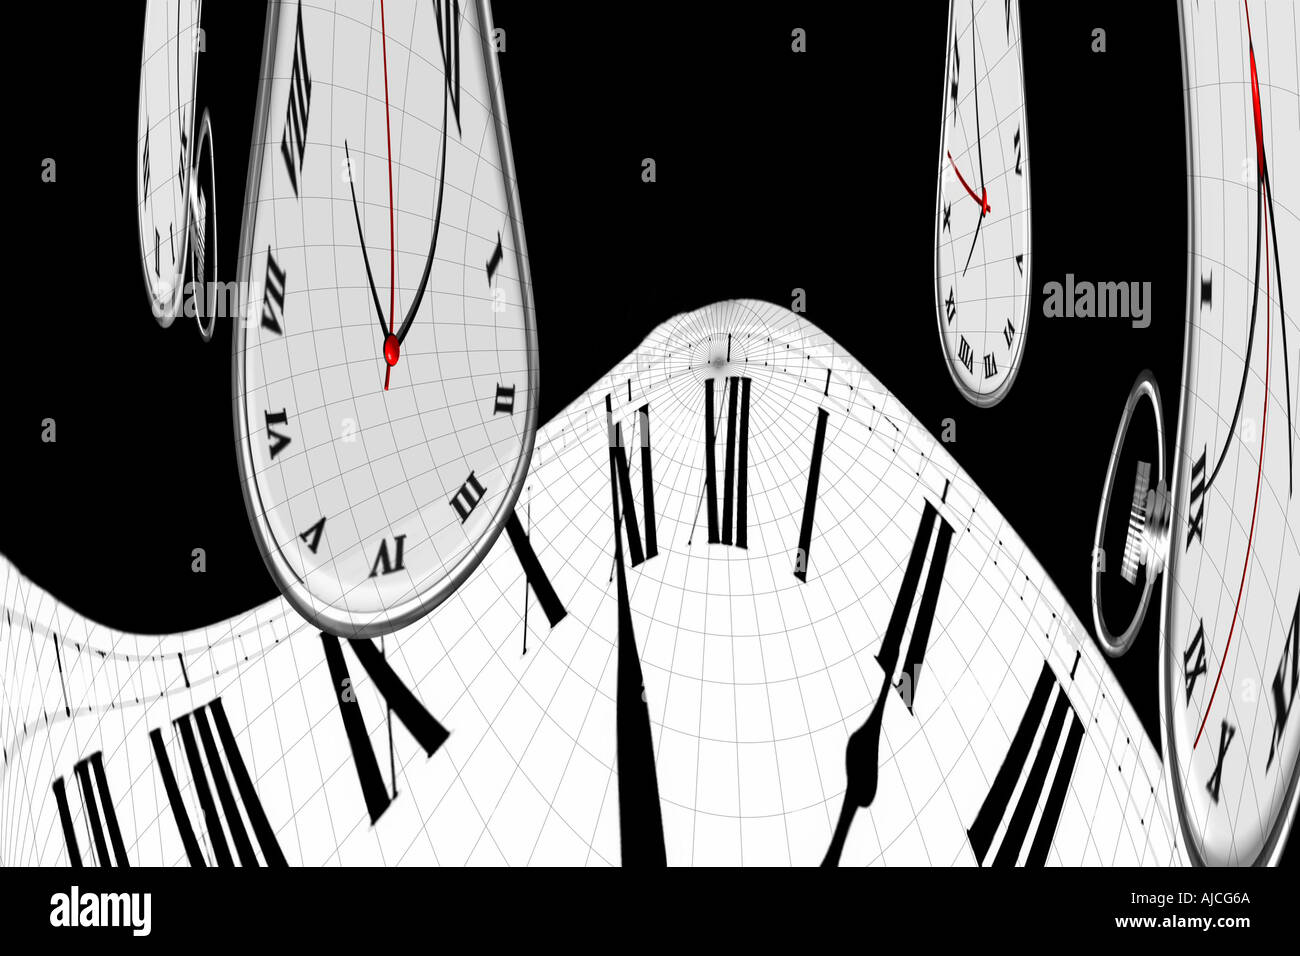 Time Watch Clock Distorted Concepts and Symbols of Time - Stock Image